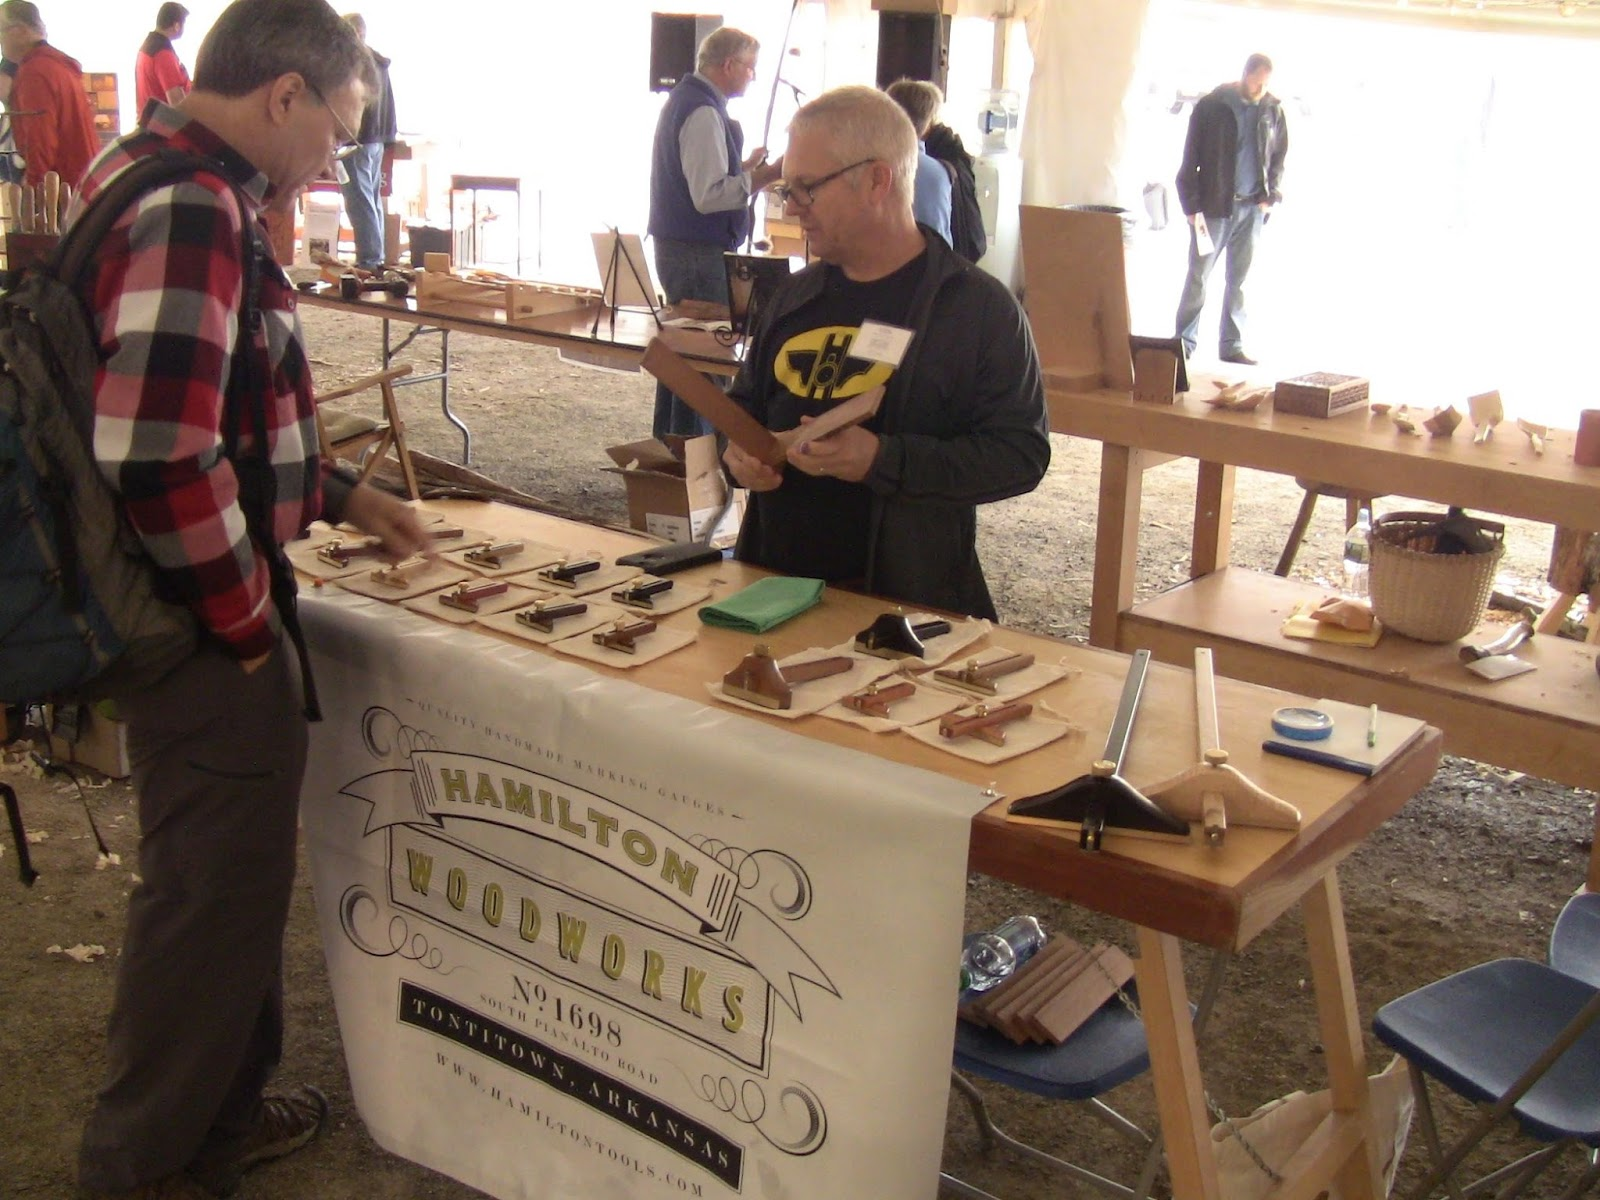 100+ [ Woodworking Shows 2013 Saratoga ] | In 2013 I ...